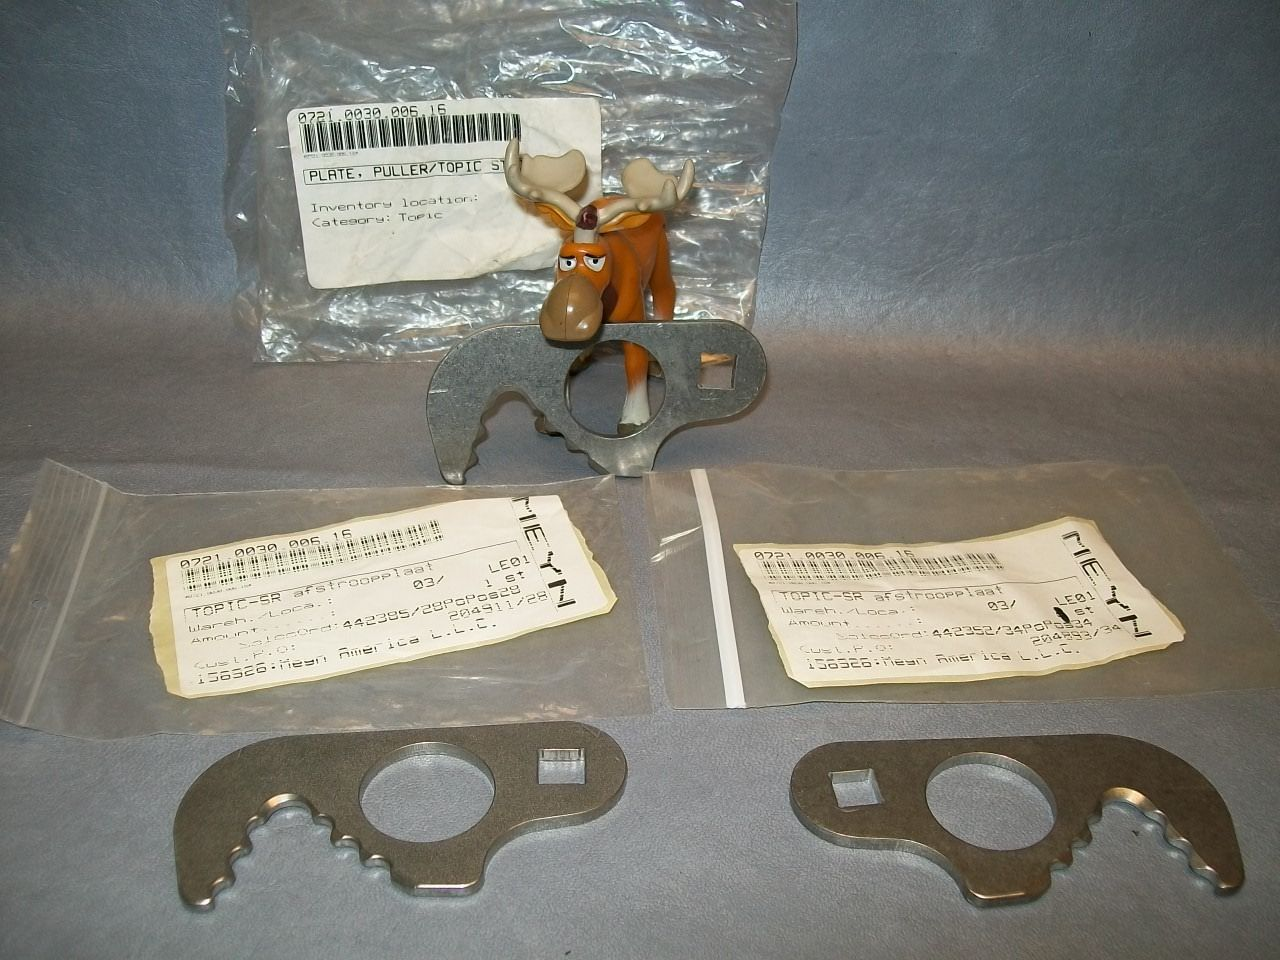 Primary image for Meyn 0721.0030.006.16 Puller Stripper Plate Lot of 3